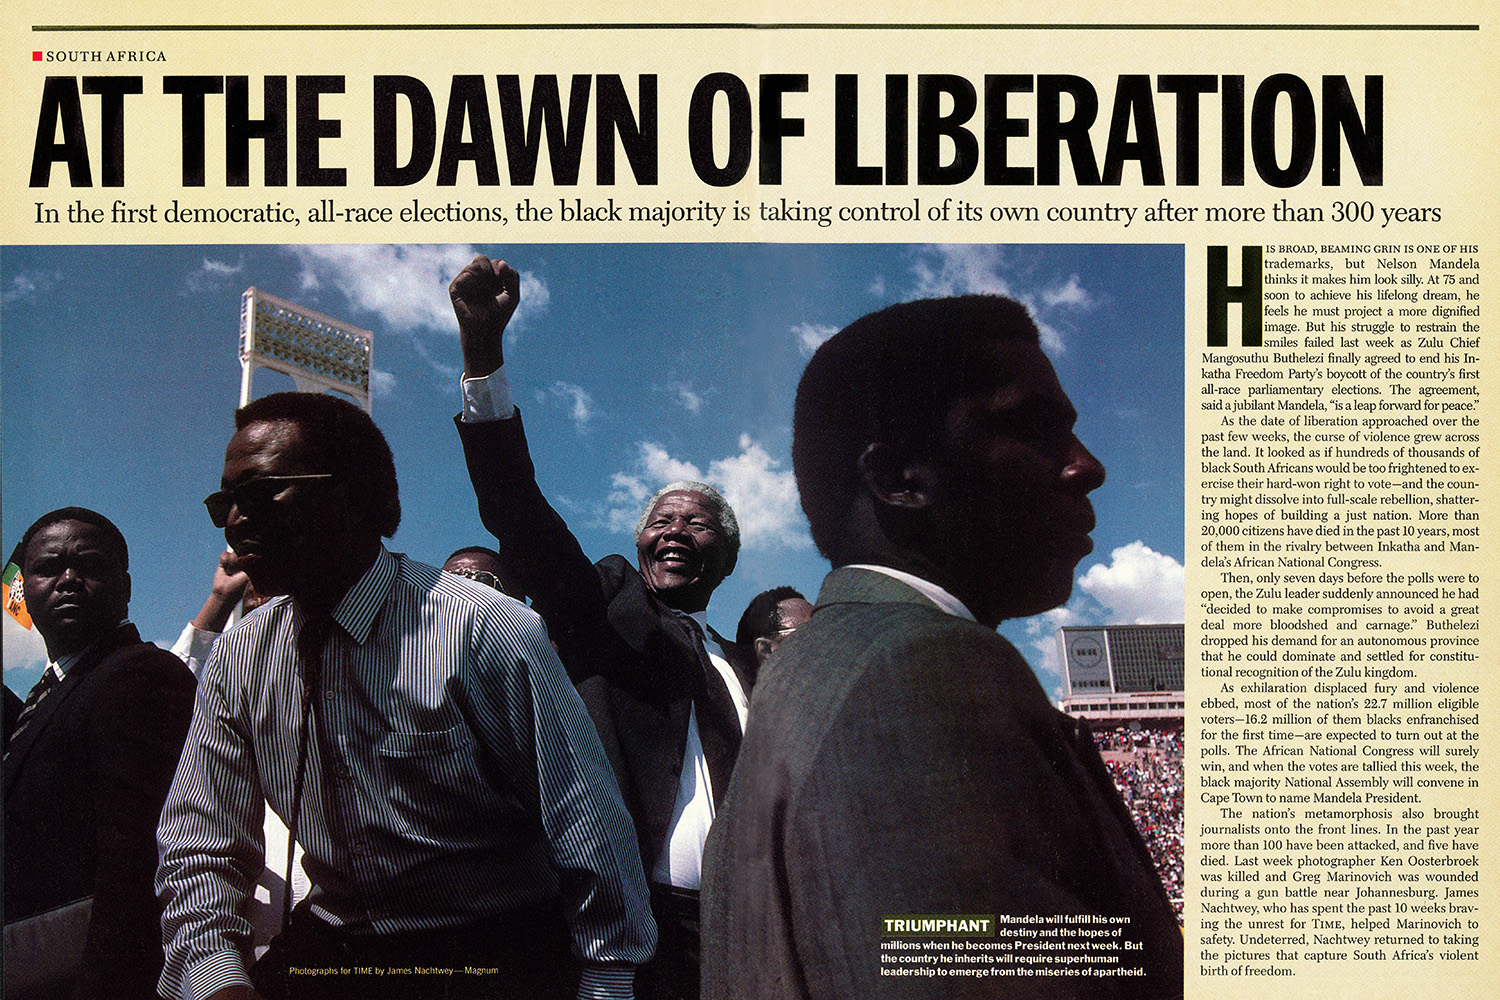 From  At the Dawn of Liberation.  May 2, 1994 issue.